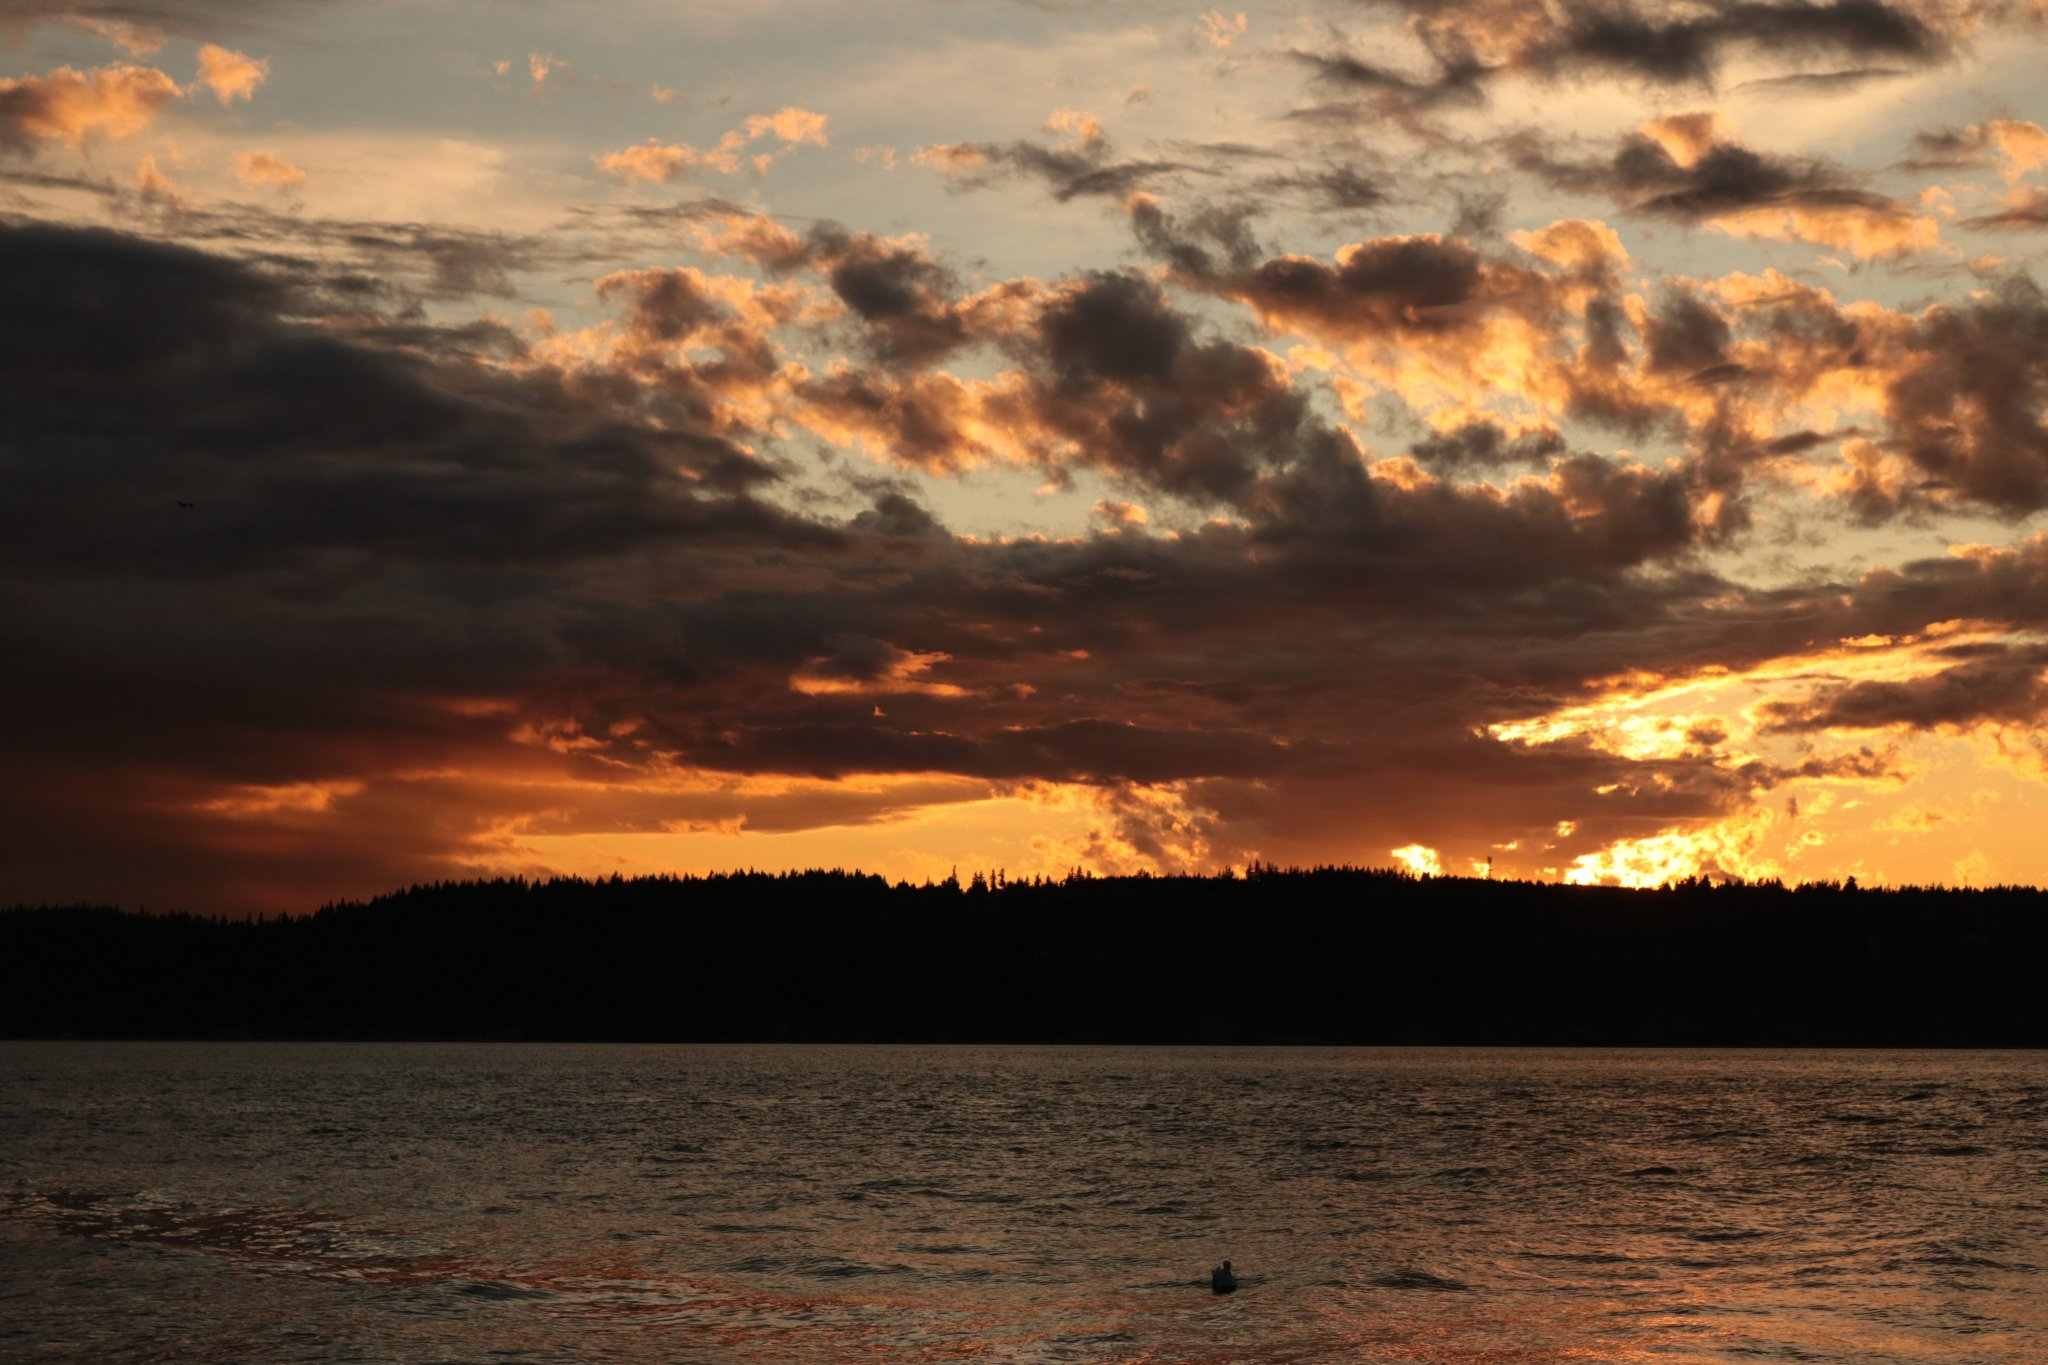 Sunset in Mukilteo, Wash. (Photo: Fred Huston/Twitter)